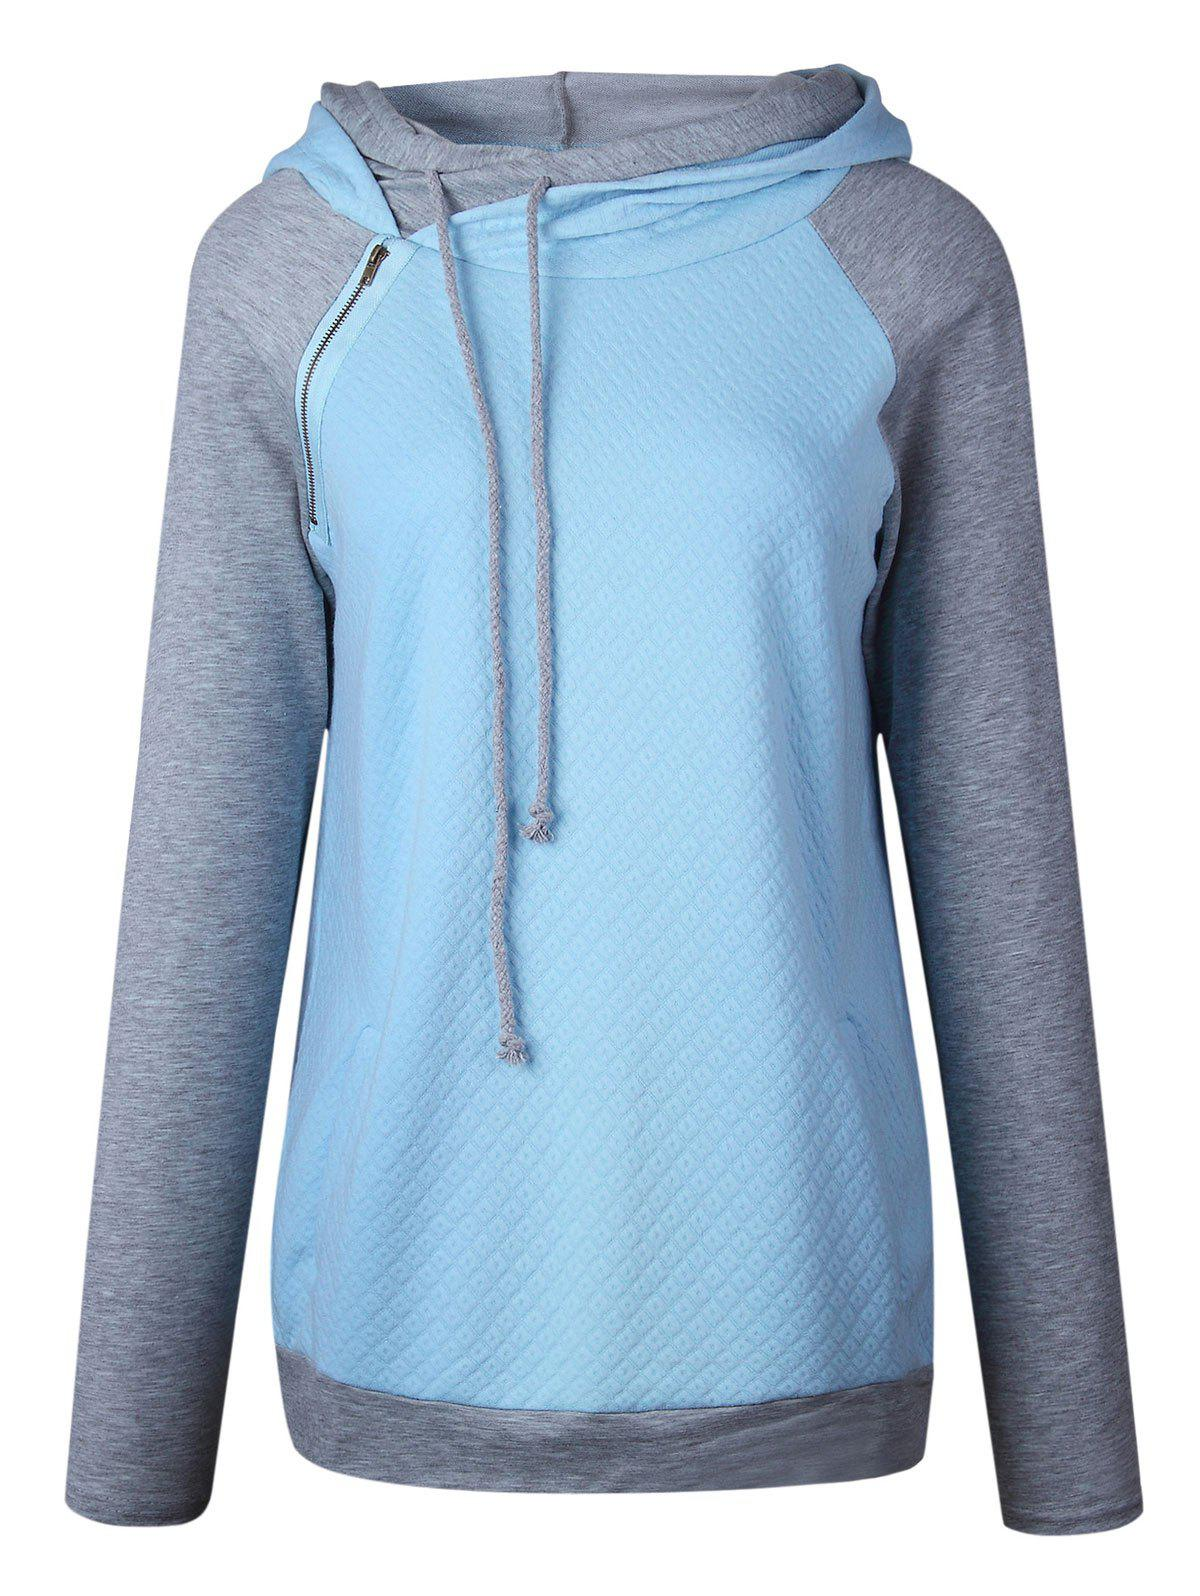 Raglan Sleeve Zippered Embellished Mock Neck Hoodie - BLUE M